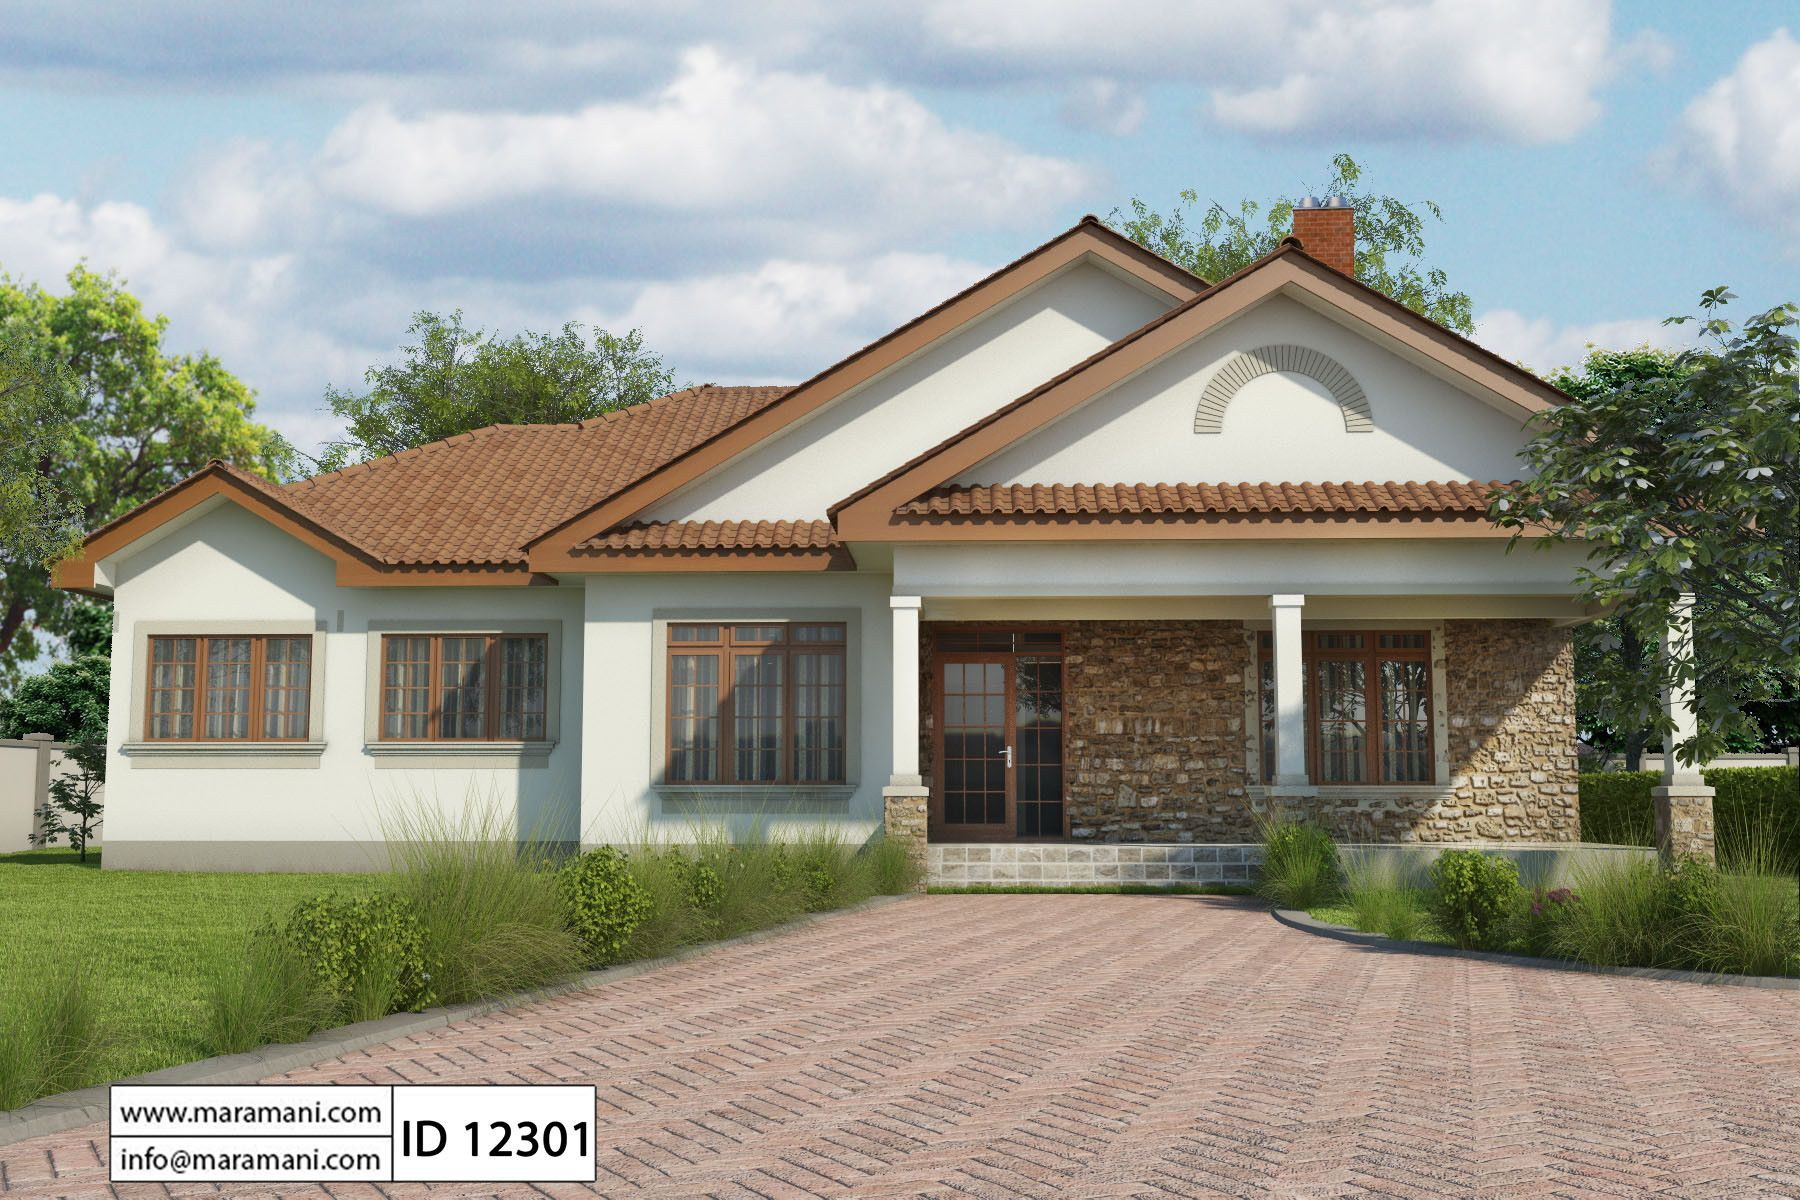 Simple 2 bedroom house plan id 13402 house designs by for Simple 2 bedroom house